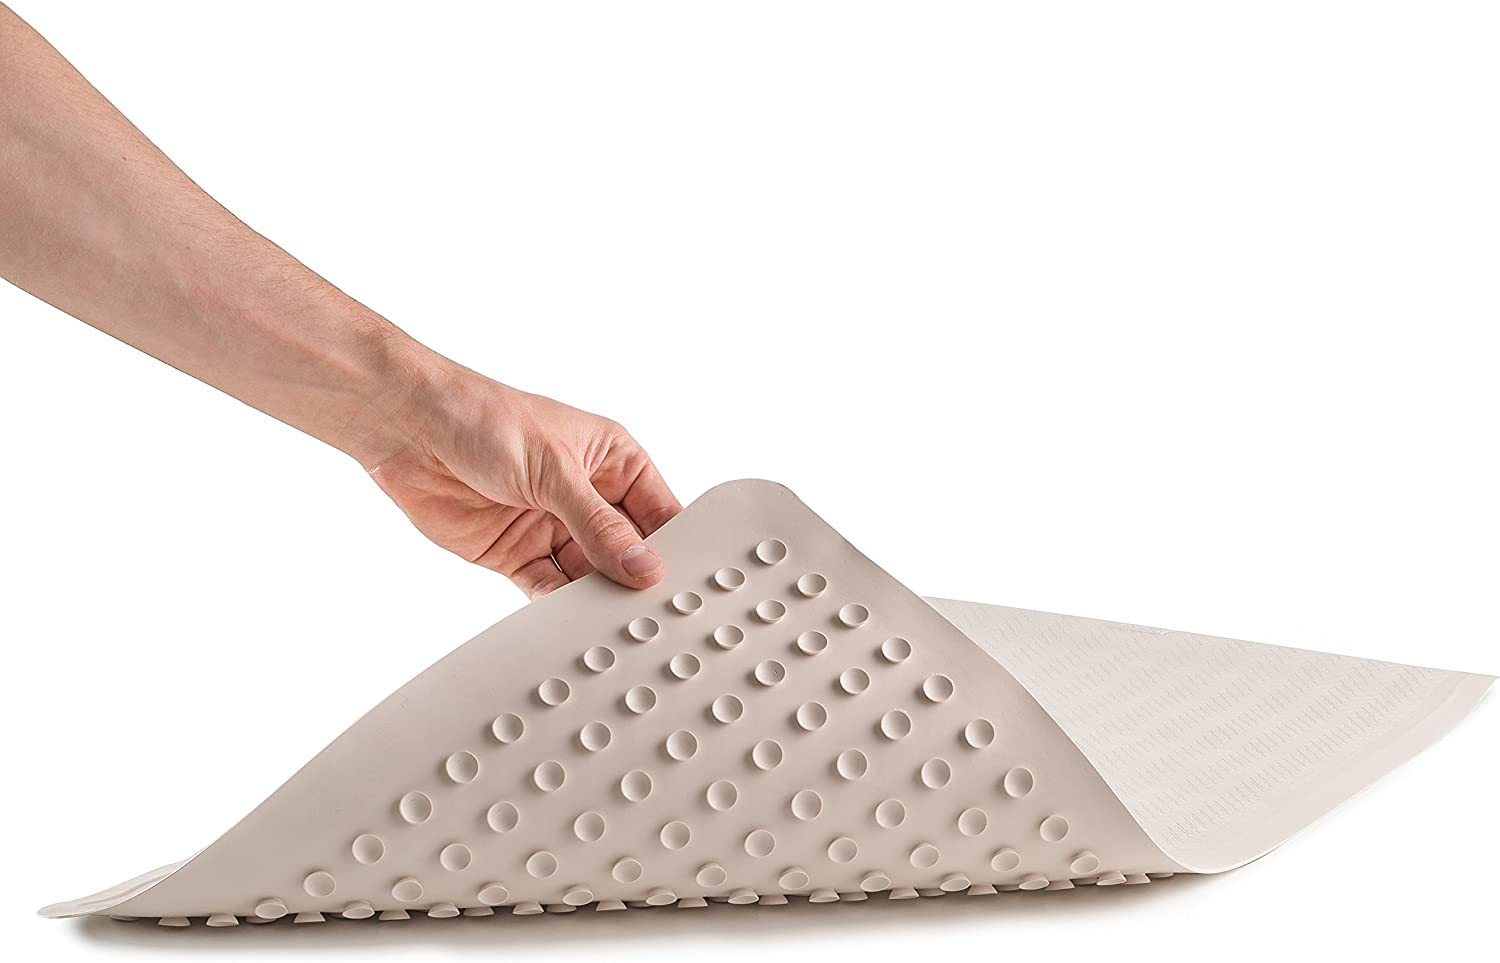 "Epica Anti-Slip Machine Washable Anti-Bacterial Bath Mat 16"" x 28"" Natural Rubber: Home & Kitchen"